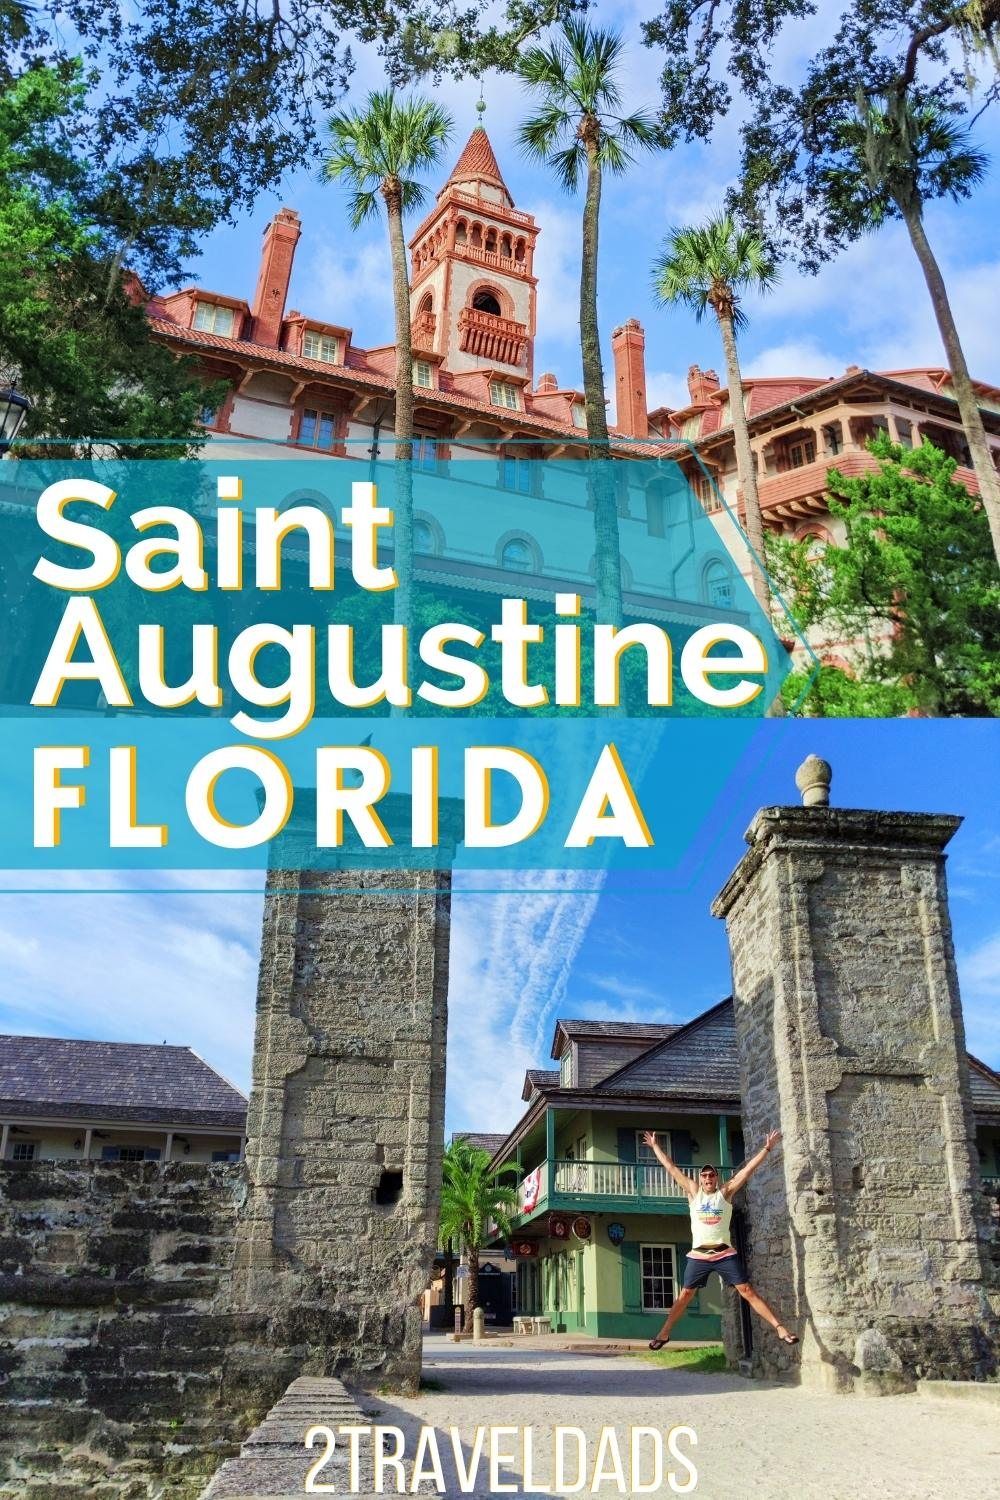 St Augustine has countless things to do, from tours to beaches. The oldest city in the USA, Saint Augustine has a beautiful downtown and amazing food and hotels.